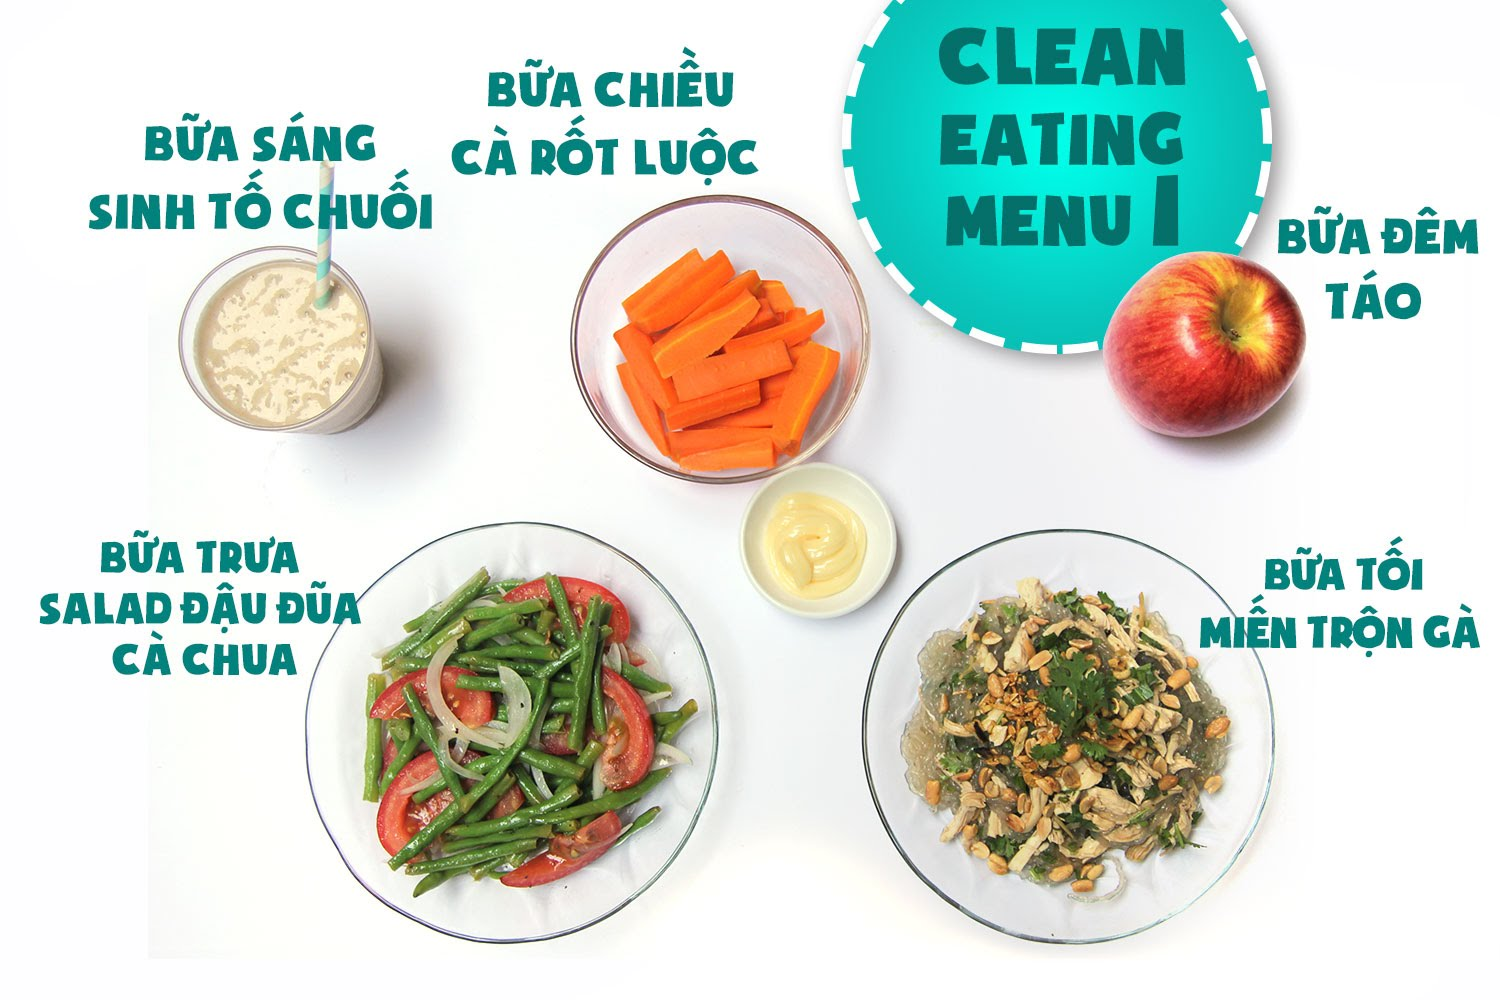 eat-clean-menu-ngay-1